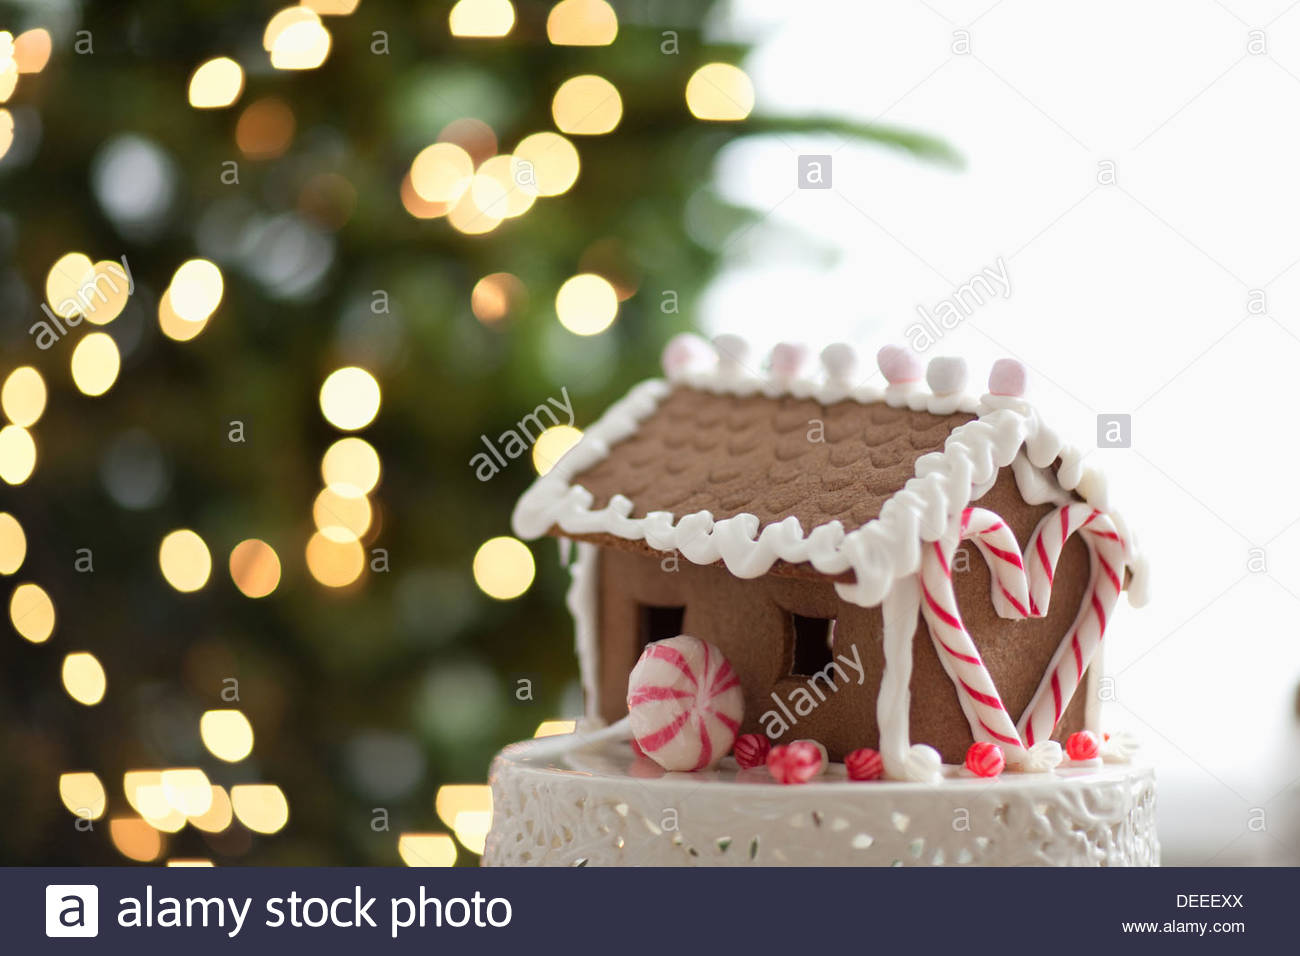 Gingerbread House in front of Christmas Tree Photo Stock